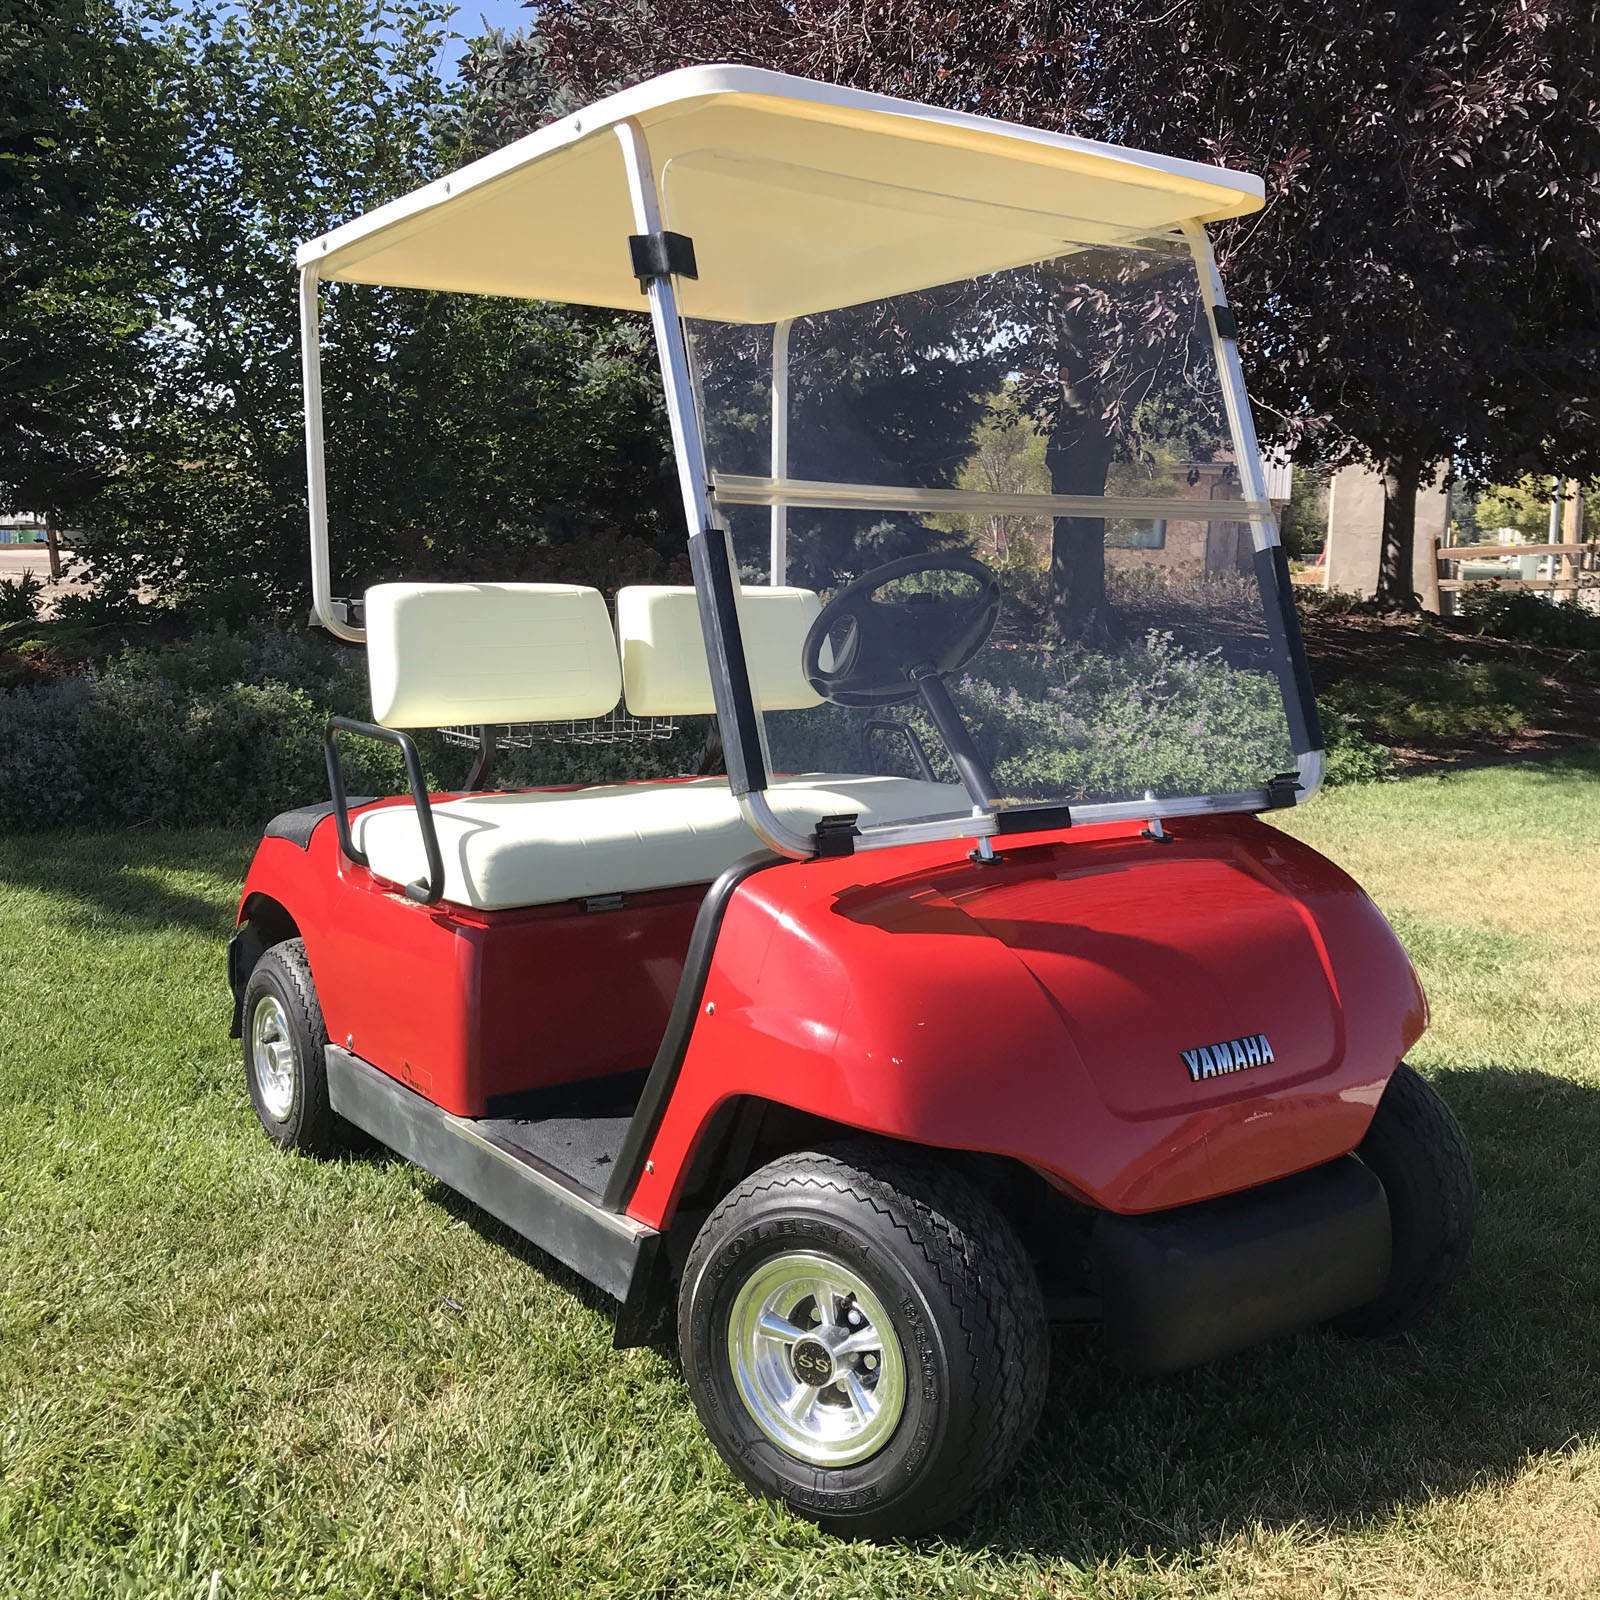 hight resolution of 2000 yamaha g19e factory red 48 volt electric